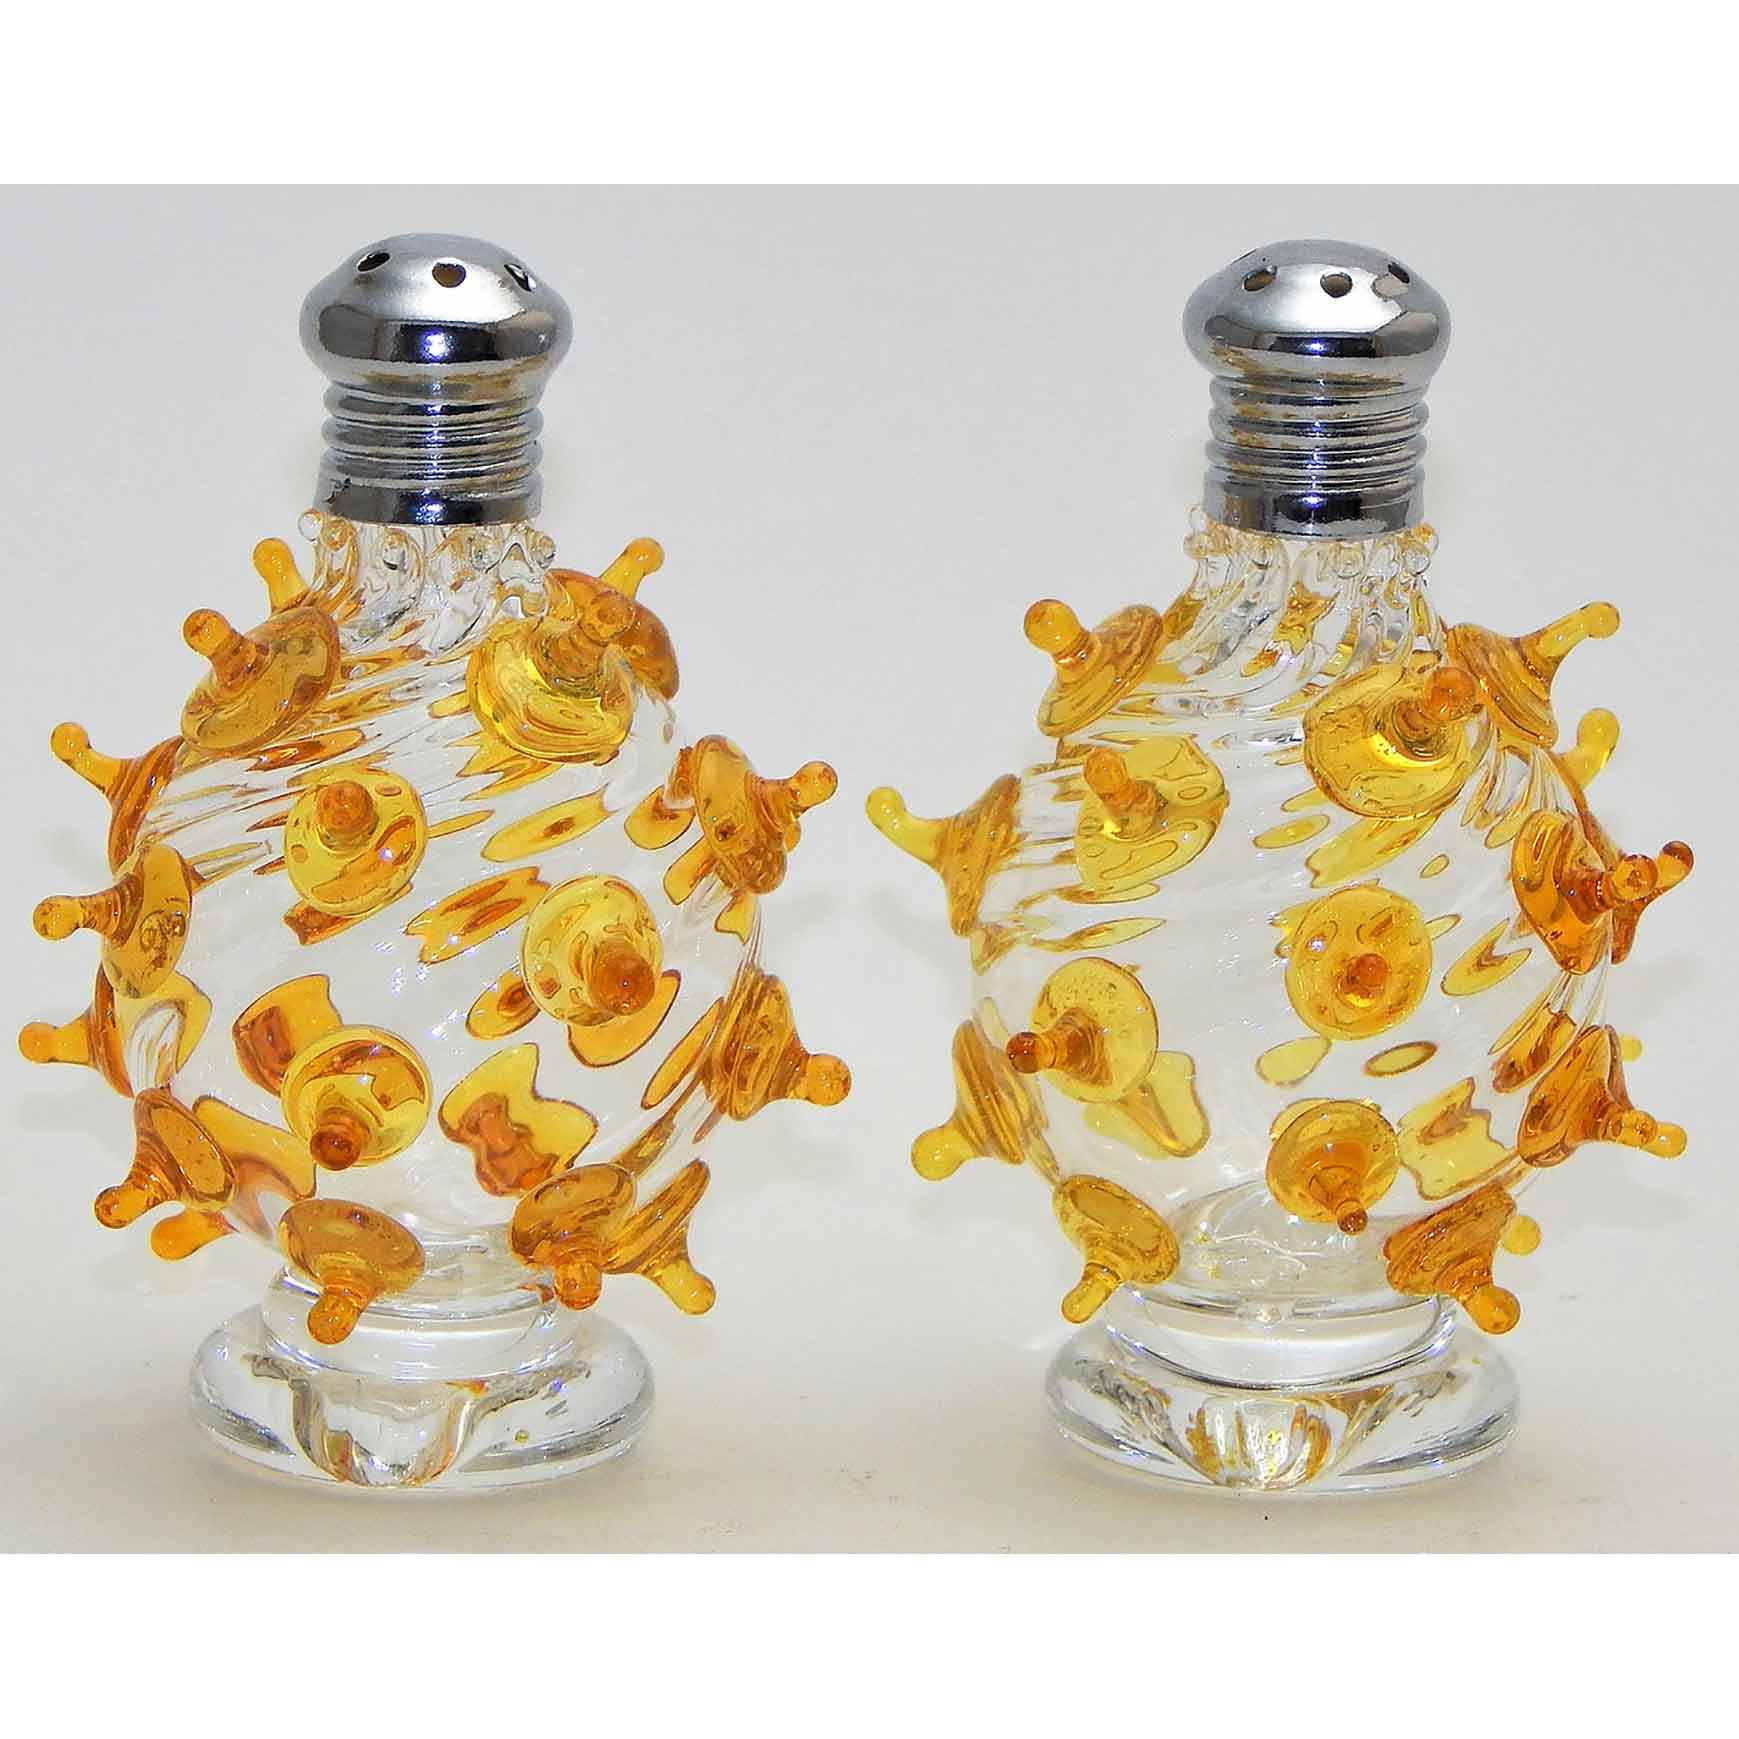 Yellow Poking Ball Blown Glass Salt and Pepper Shaker 200 by Four Sisters Art Glass